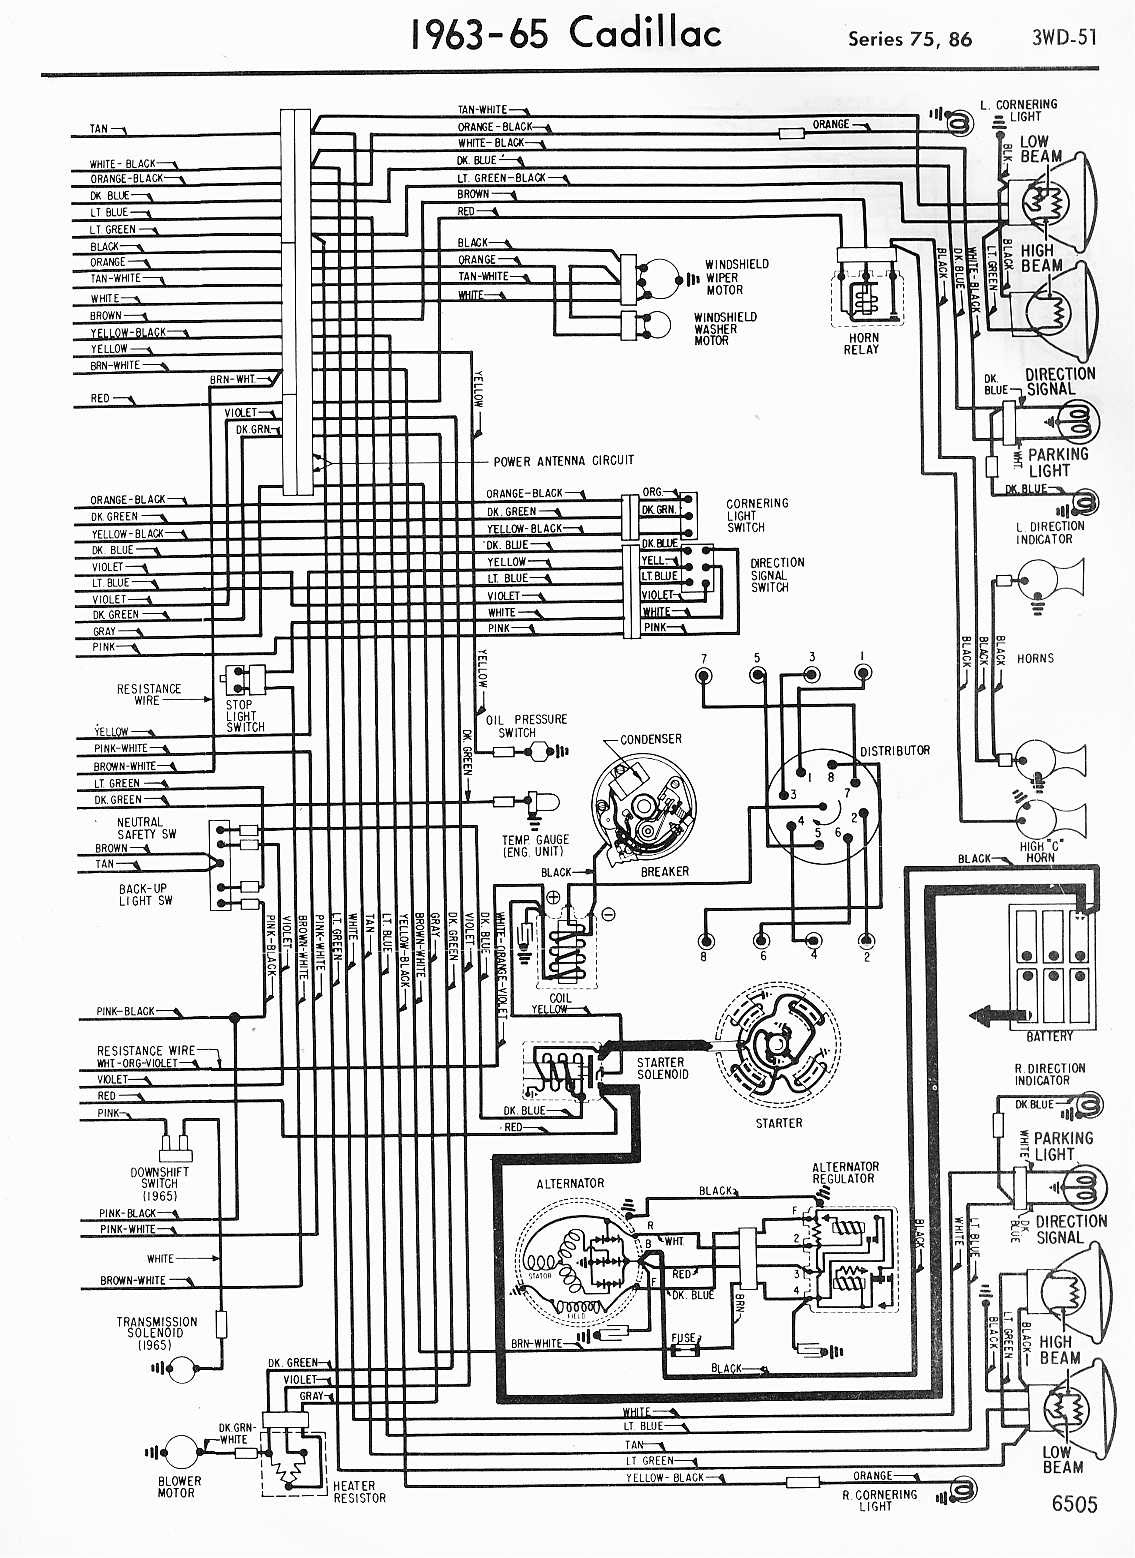 1969 Cadillac Wiring Diagram Wiring Diagram View A View A Zaafran It